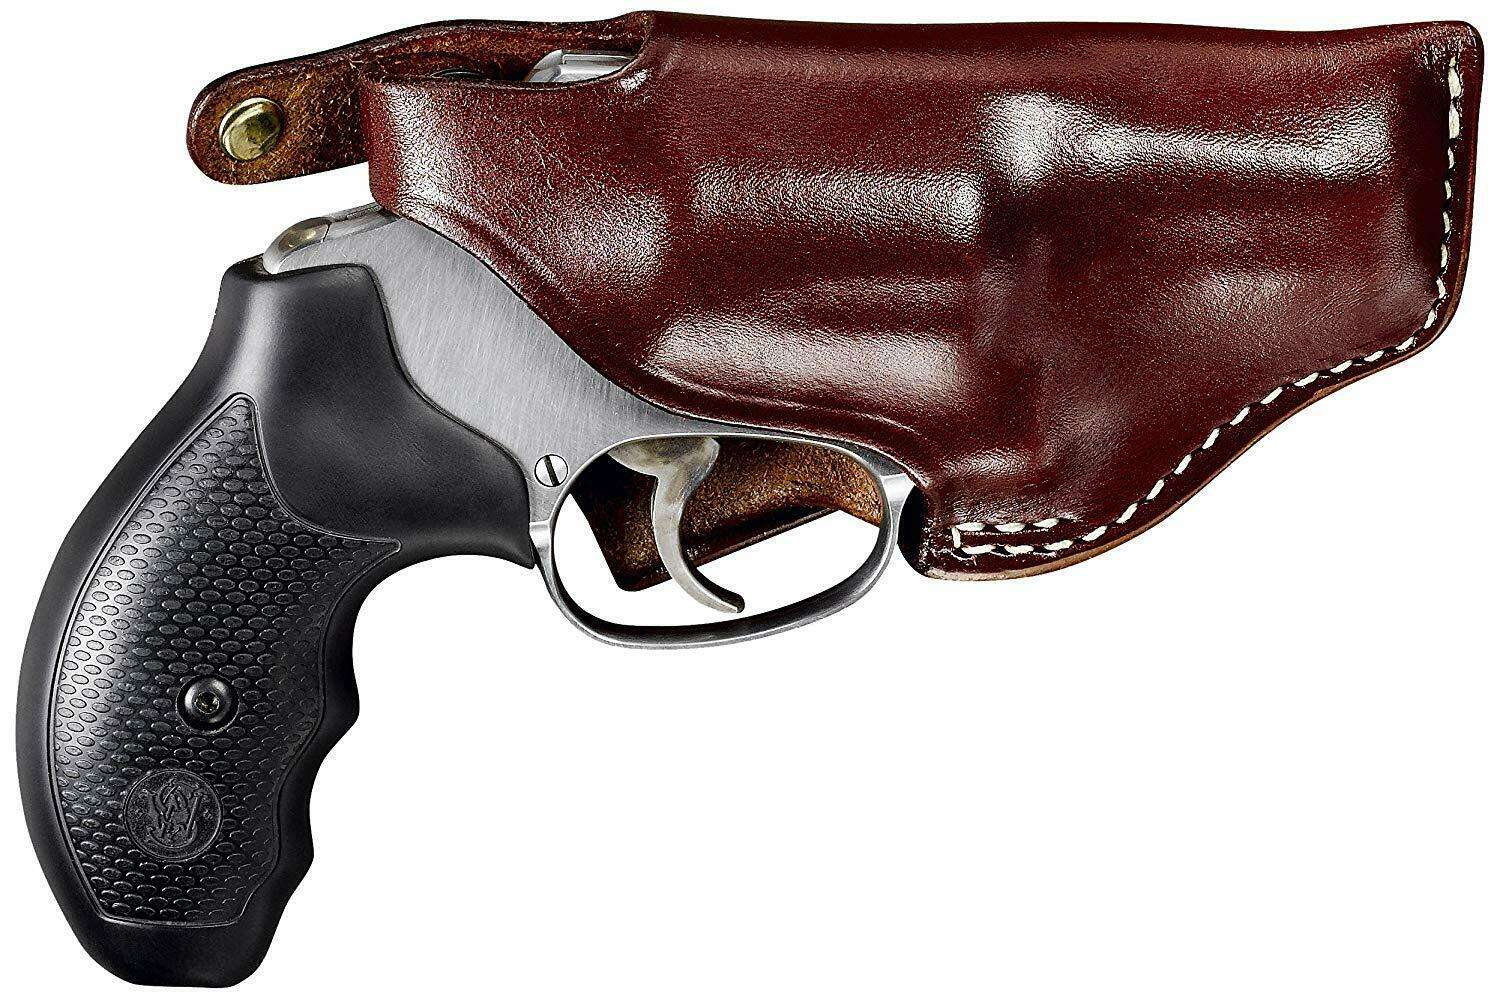 Carrylite S&W K L Funda Para Ruger SECURITY SIX Marcos & Taurus 66 con 4  barril